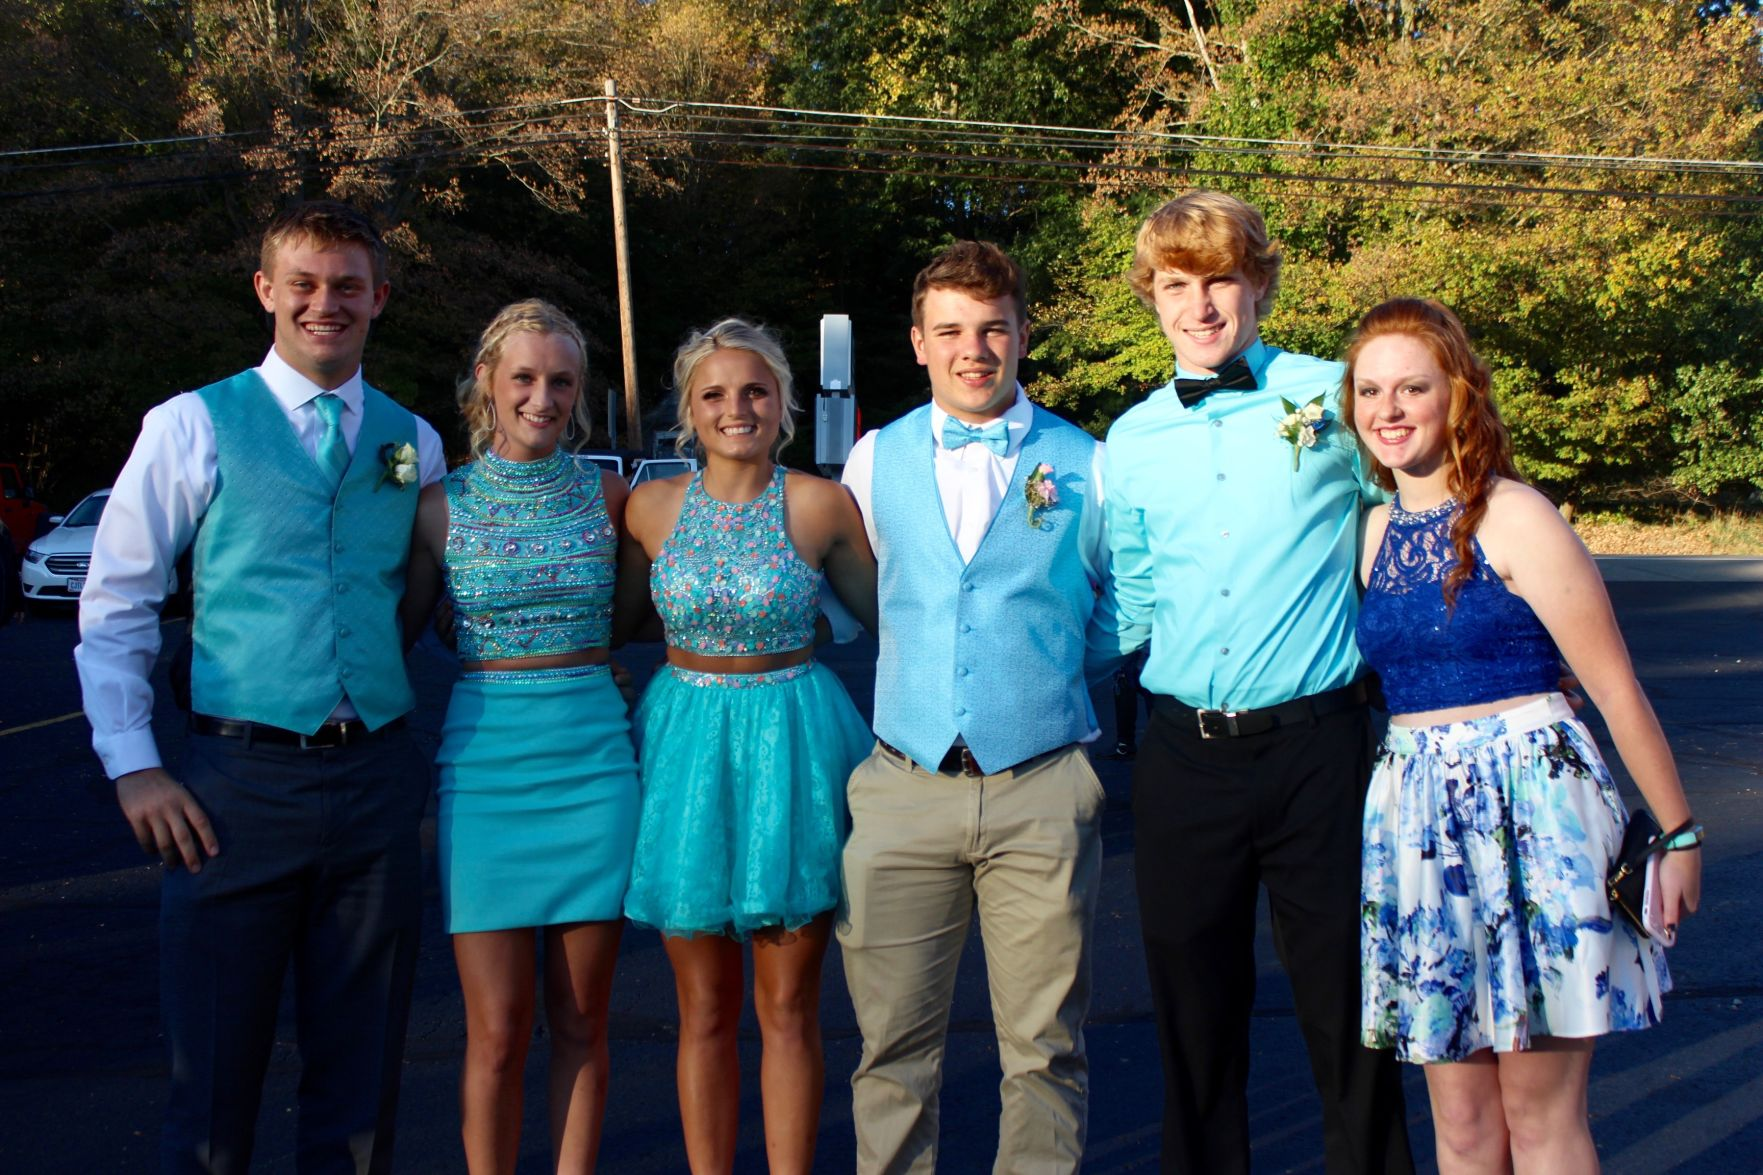 Gallery: Lucas High School Homecoming 2017